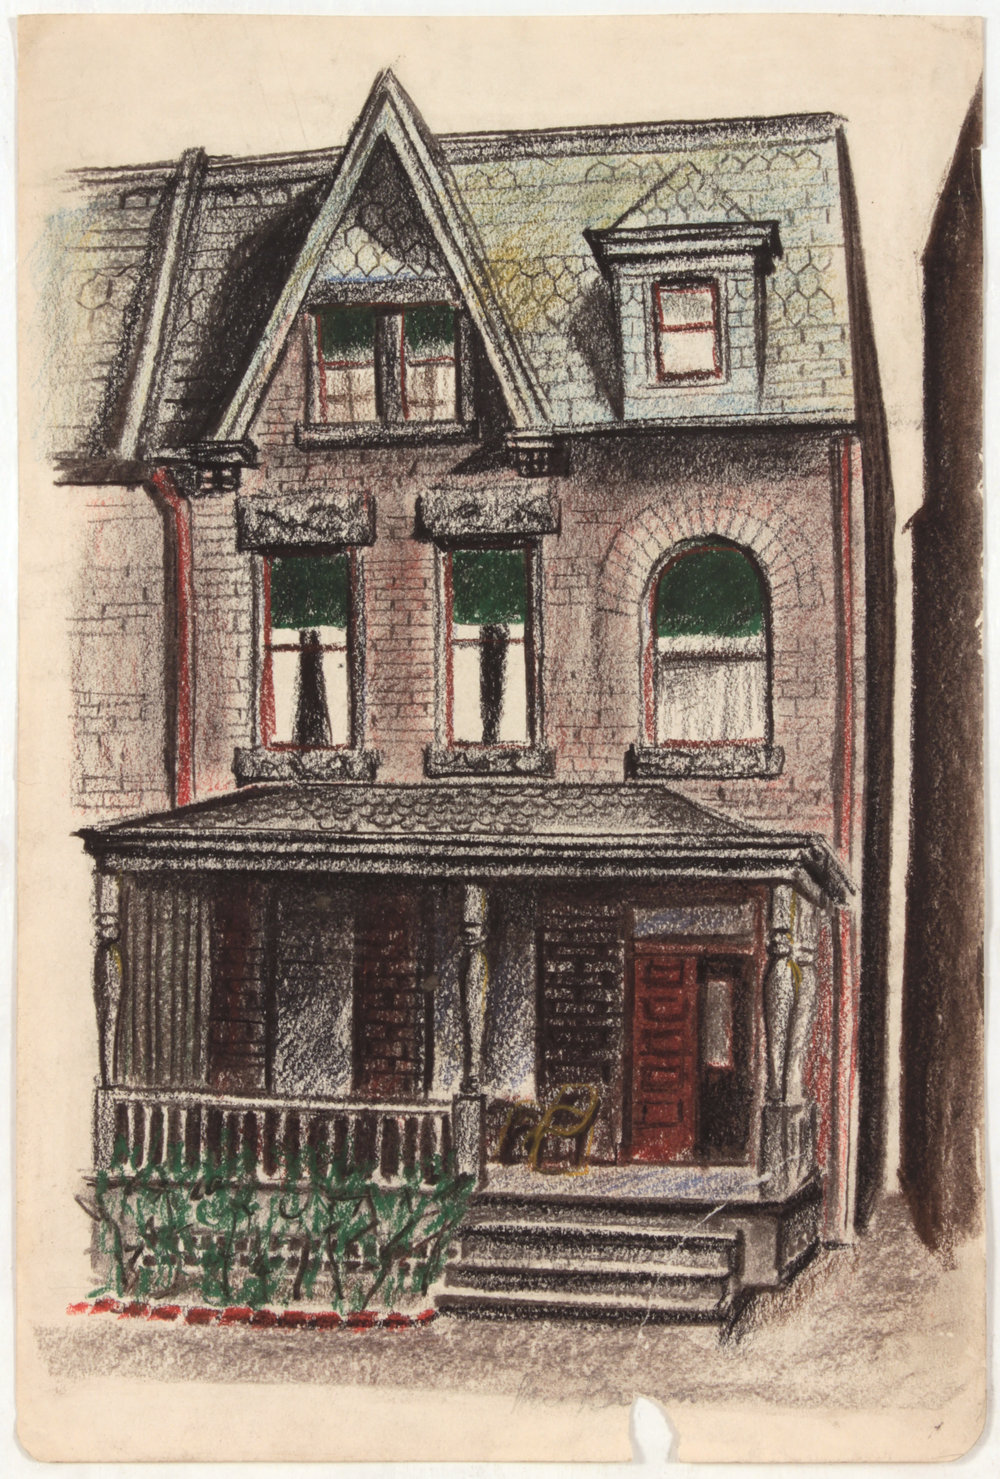 13. 1947-48 c, House, Conté Crayon and Pastel on Paper, 17.375x11.8125, PPS 1432.JPG